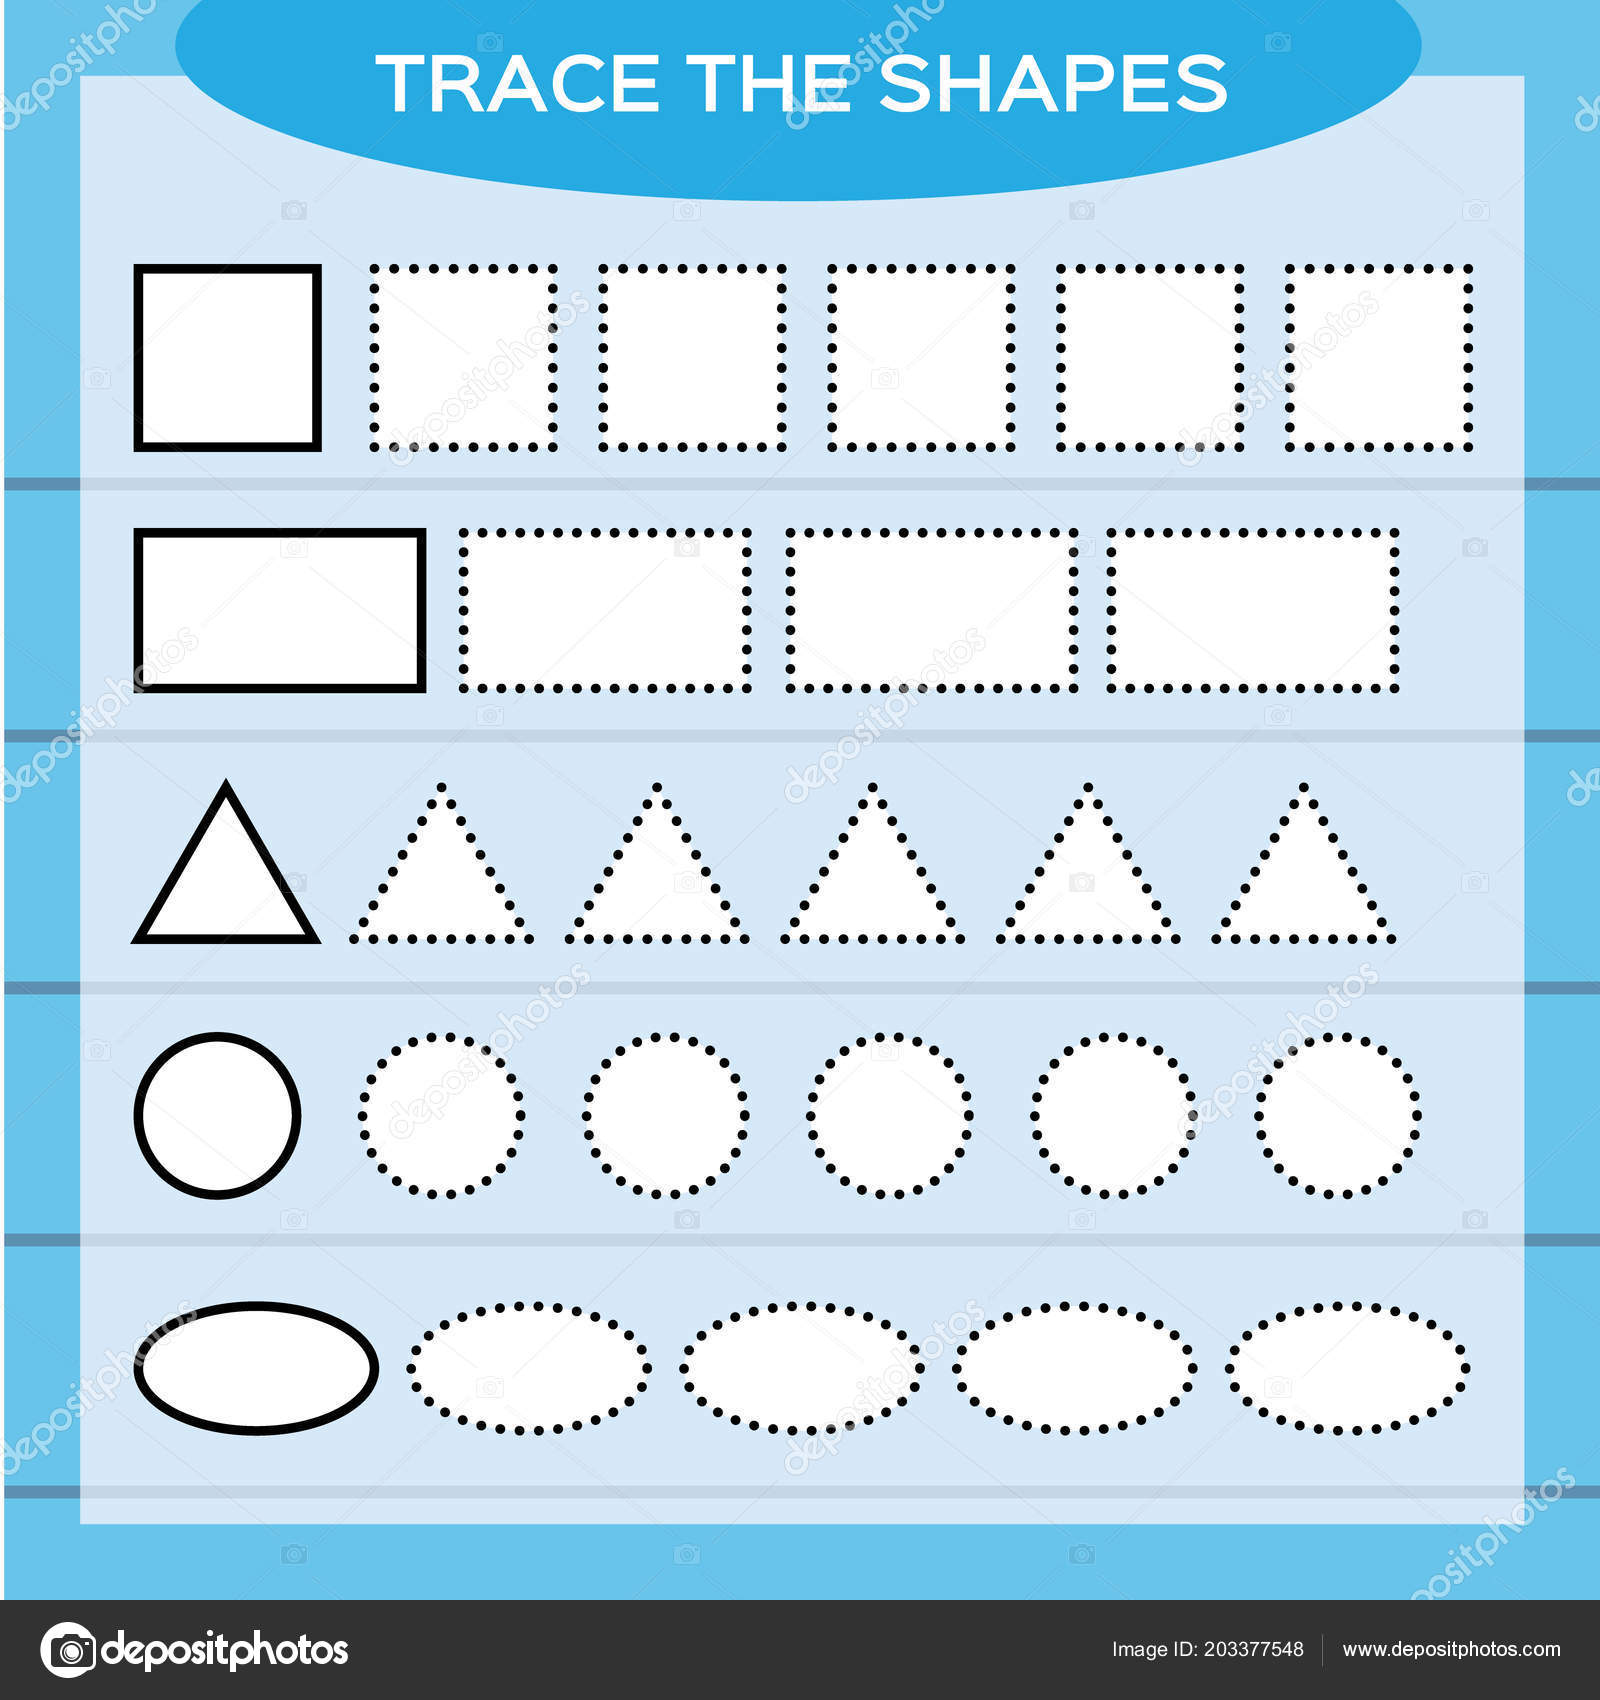 Trace Shapes Kids Education Preschool Worksheet Basic